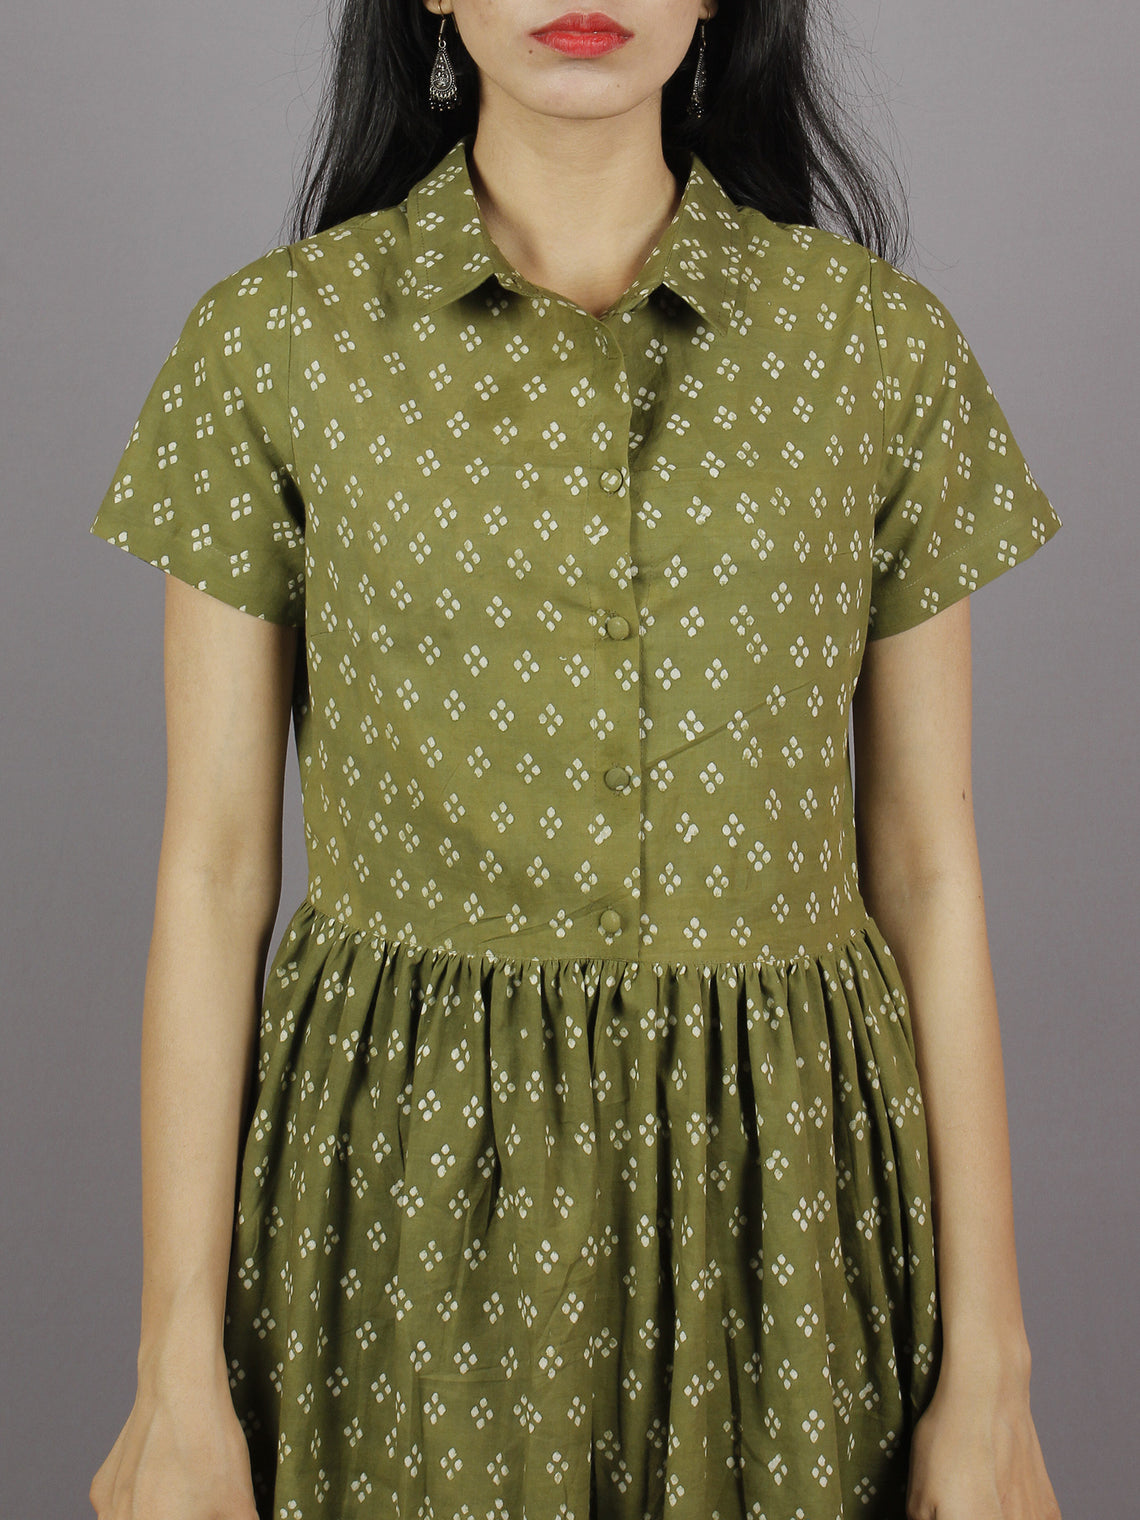 Olive Green Ivory Hand Block Cotton Dress With Gathers And Side Pockets - D4144501